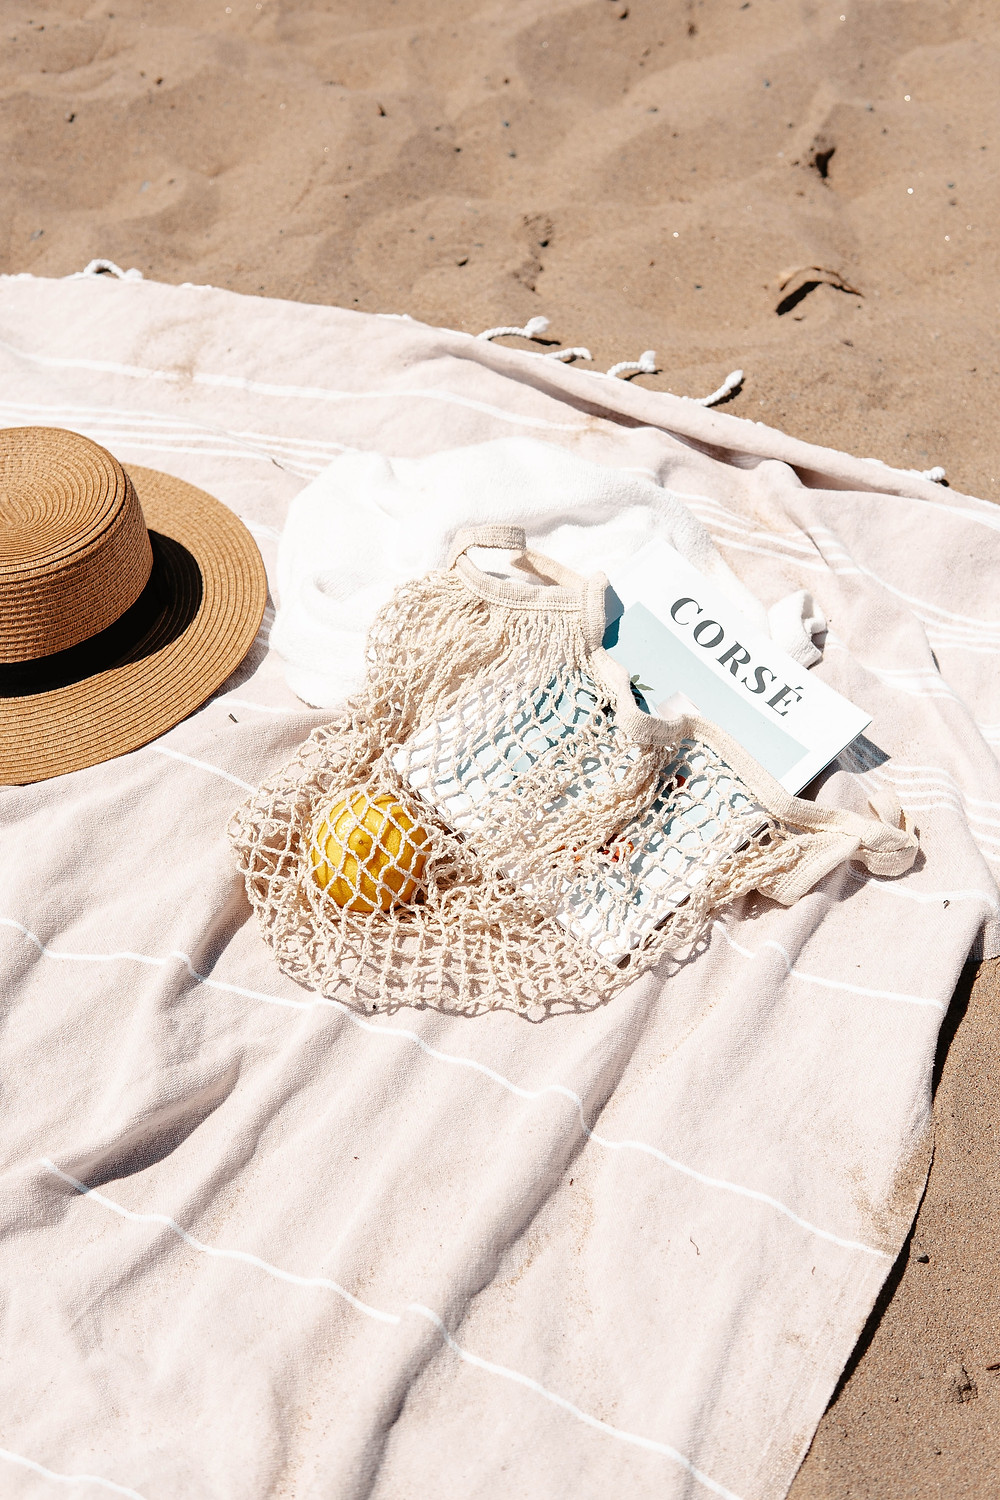 beach blanket on the sand with a hat and a reusable product bag containing a fruit and a magazine